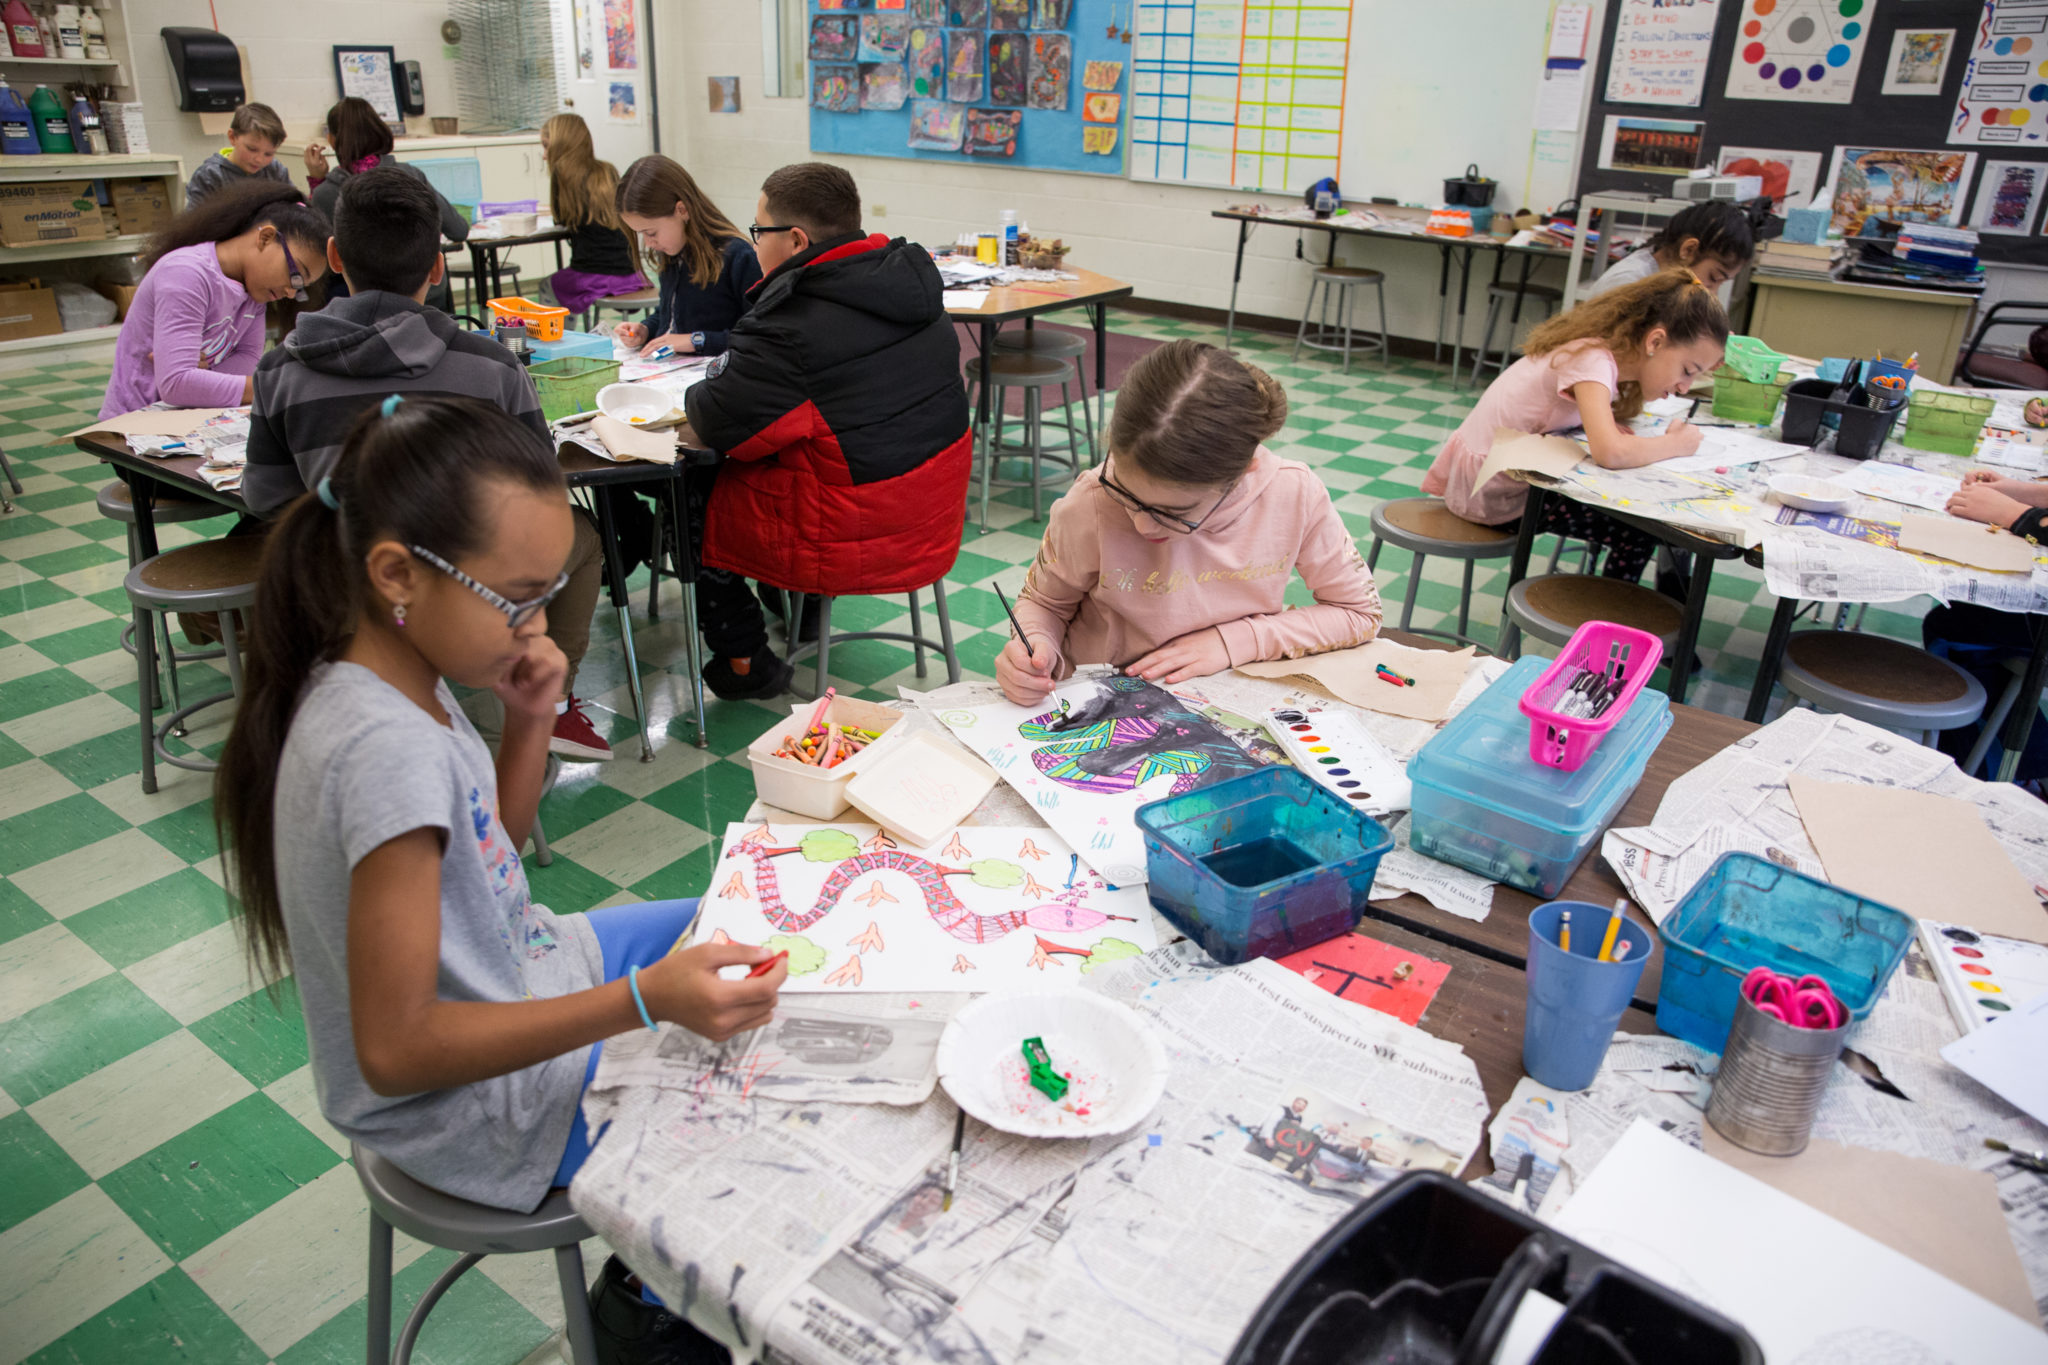 students drawing and painting